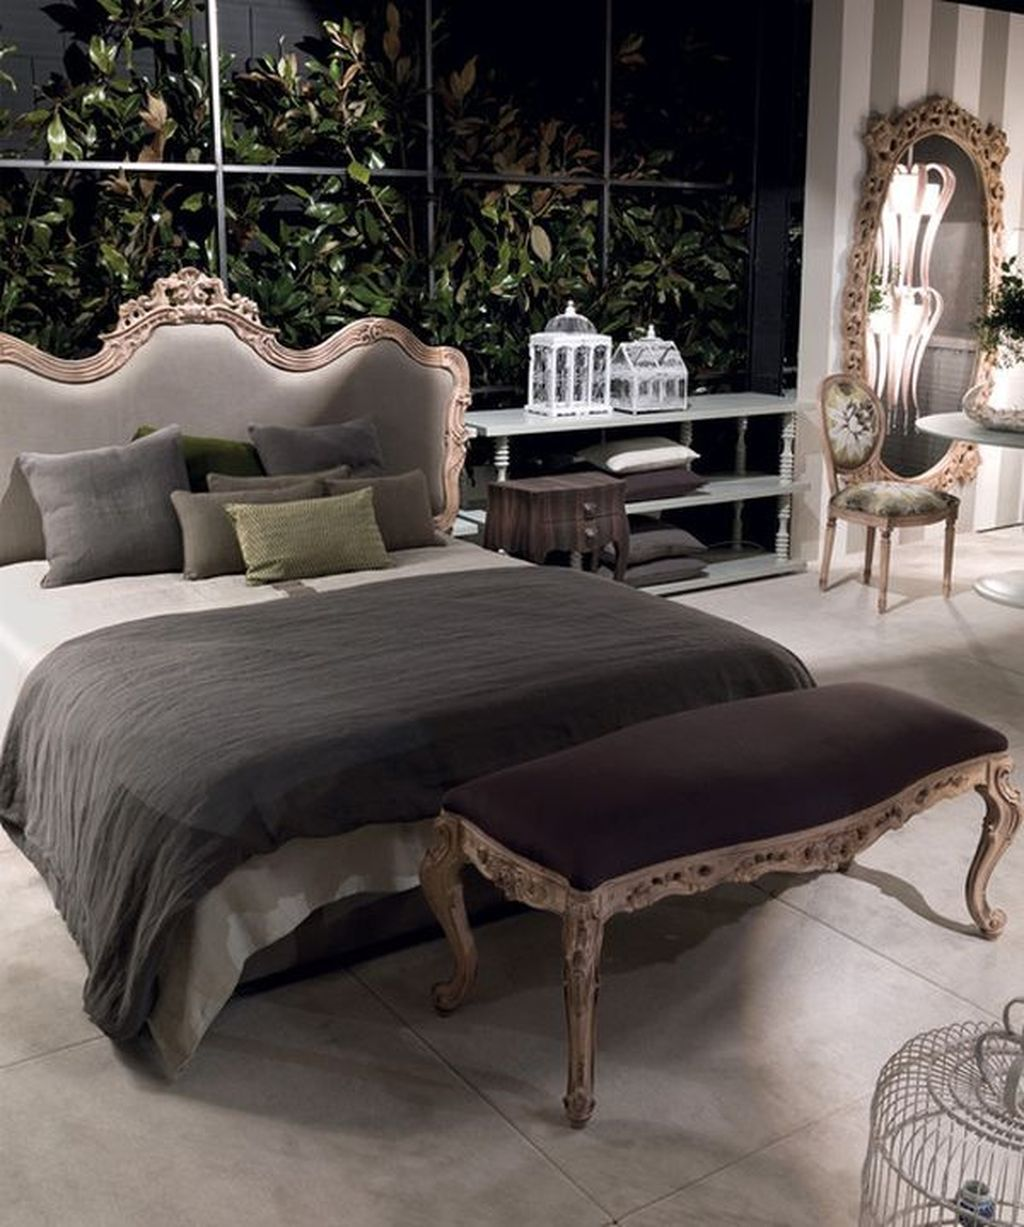 8 Unique And Modern Victorian Furniture For Your Home Talkdecor Home Decor Bedroom Modern Victorian Bedroom Victorian Style Furniture